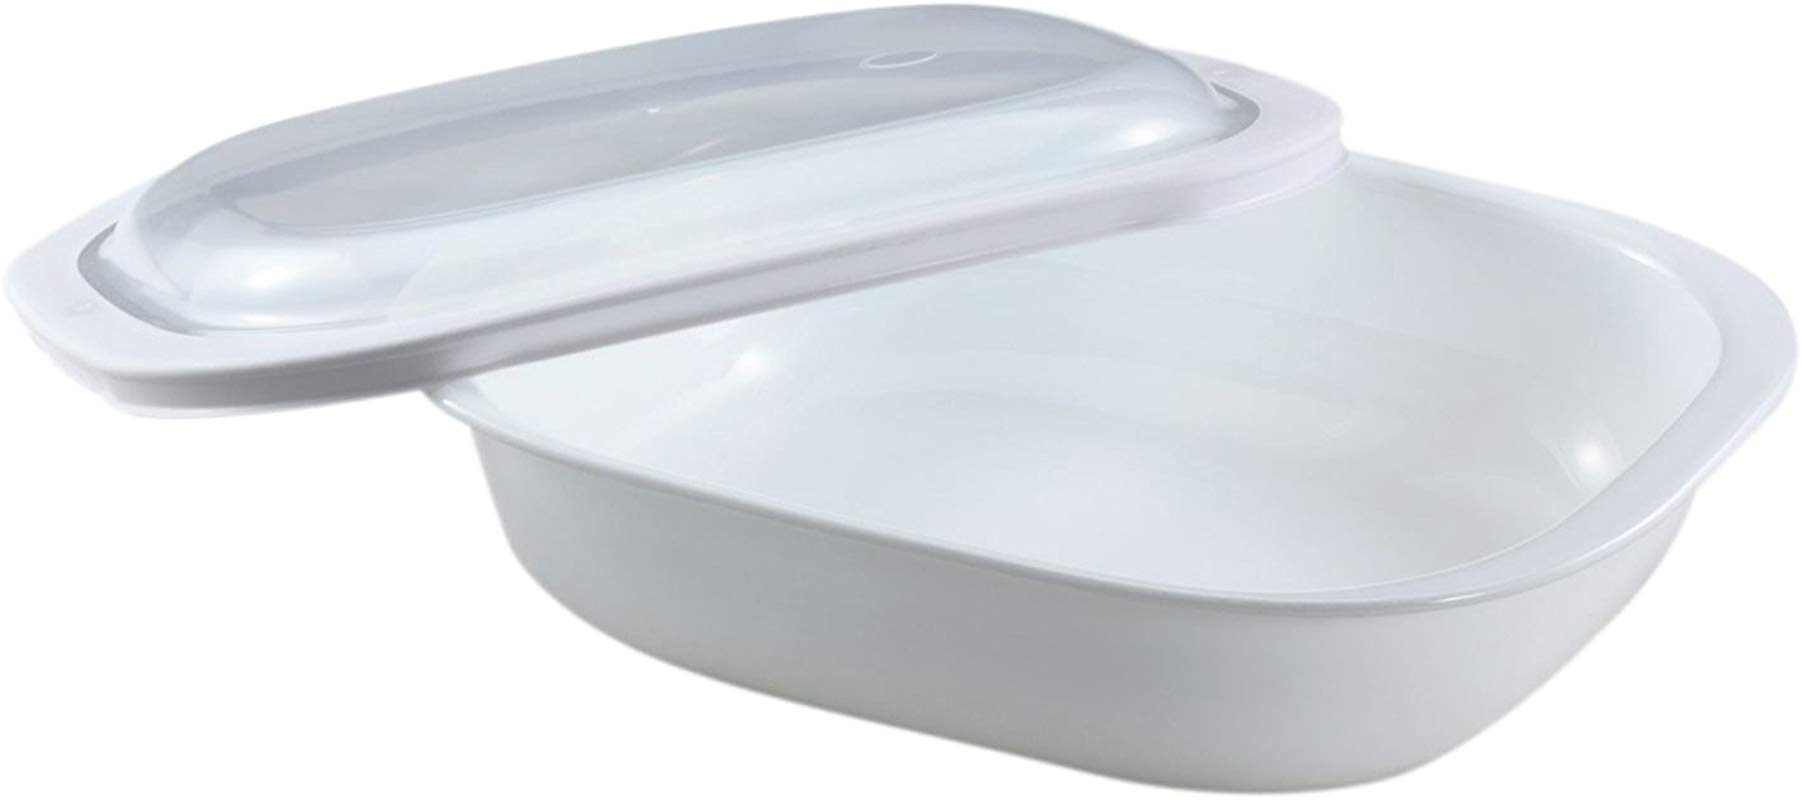 CorningWare SimplyLite 3 Quart Oblong Baking Dish With Plastic Lid